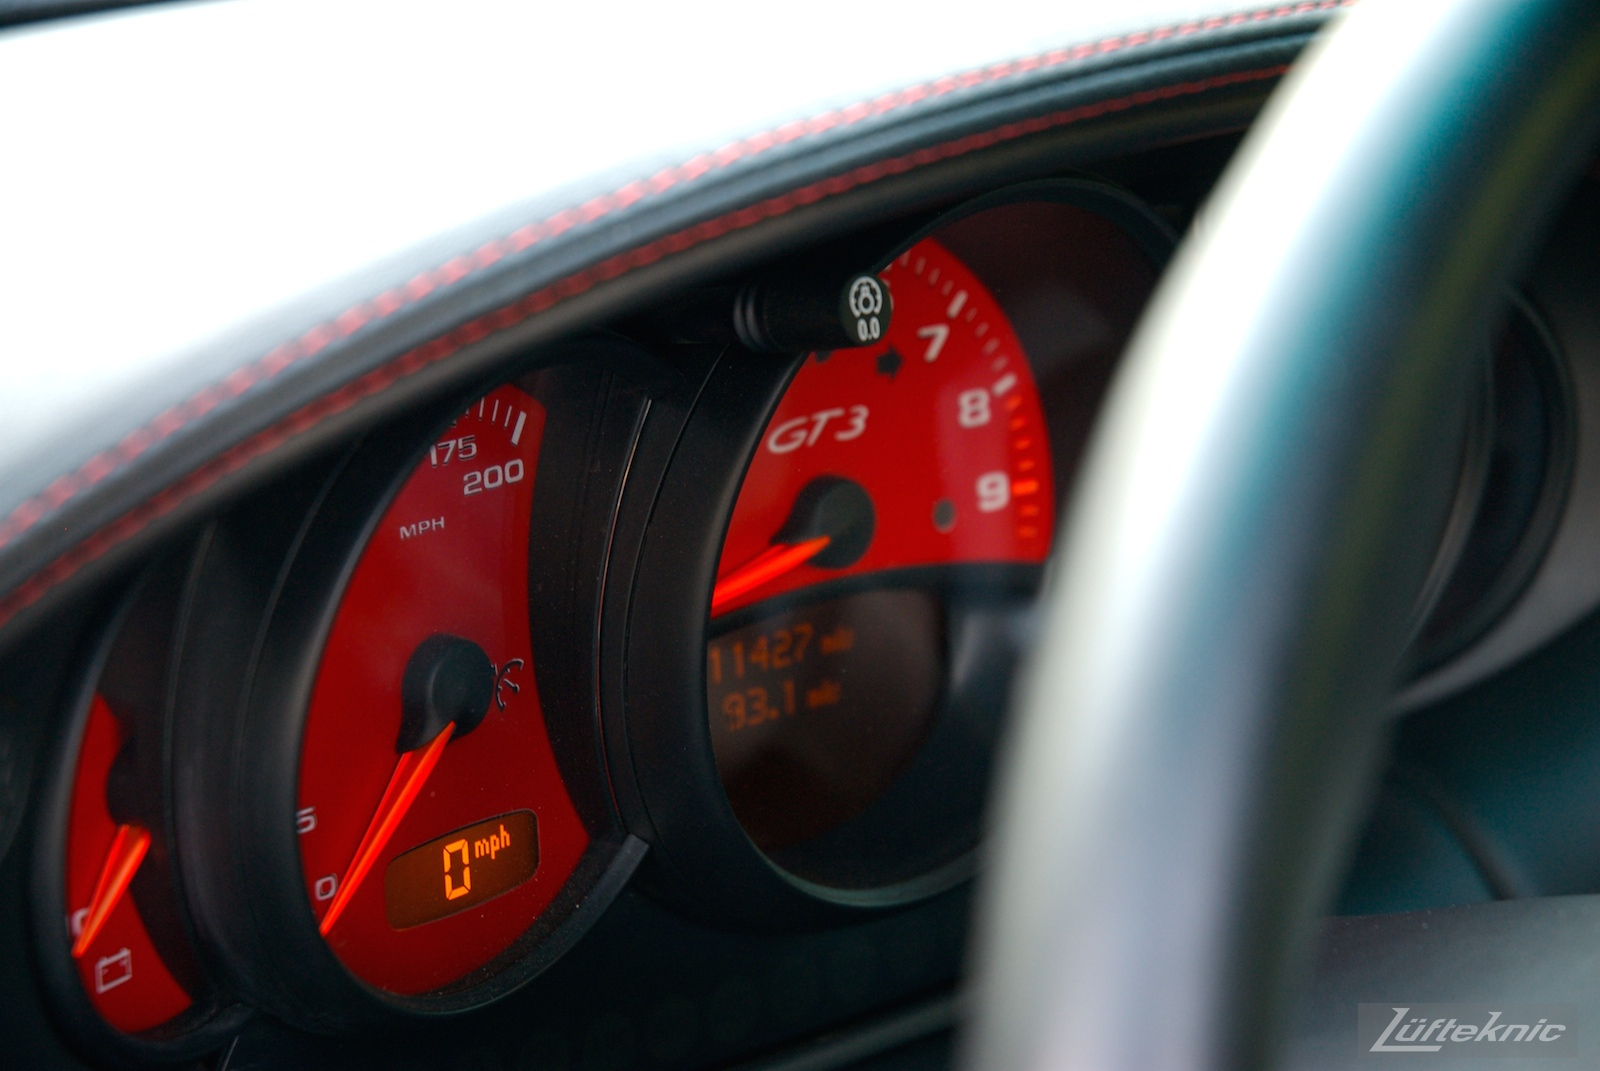 A track-prepped white Porsche 996 Gt3 with red gauges